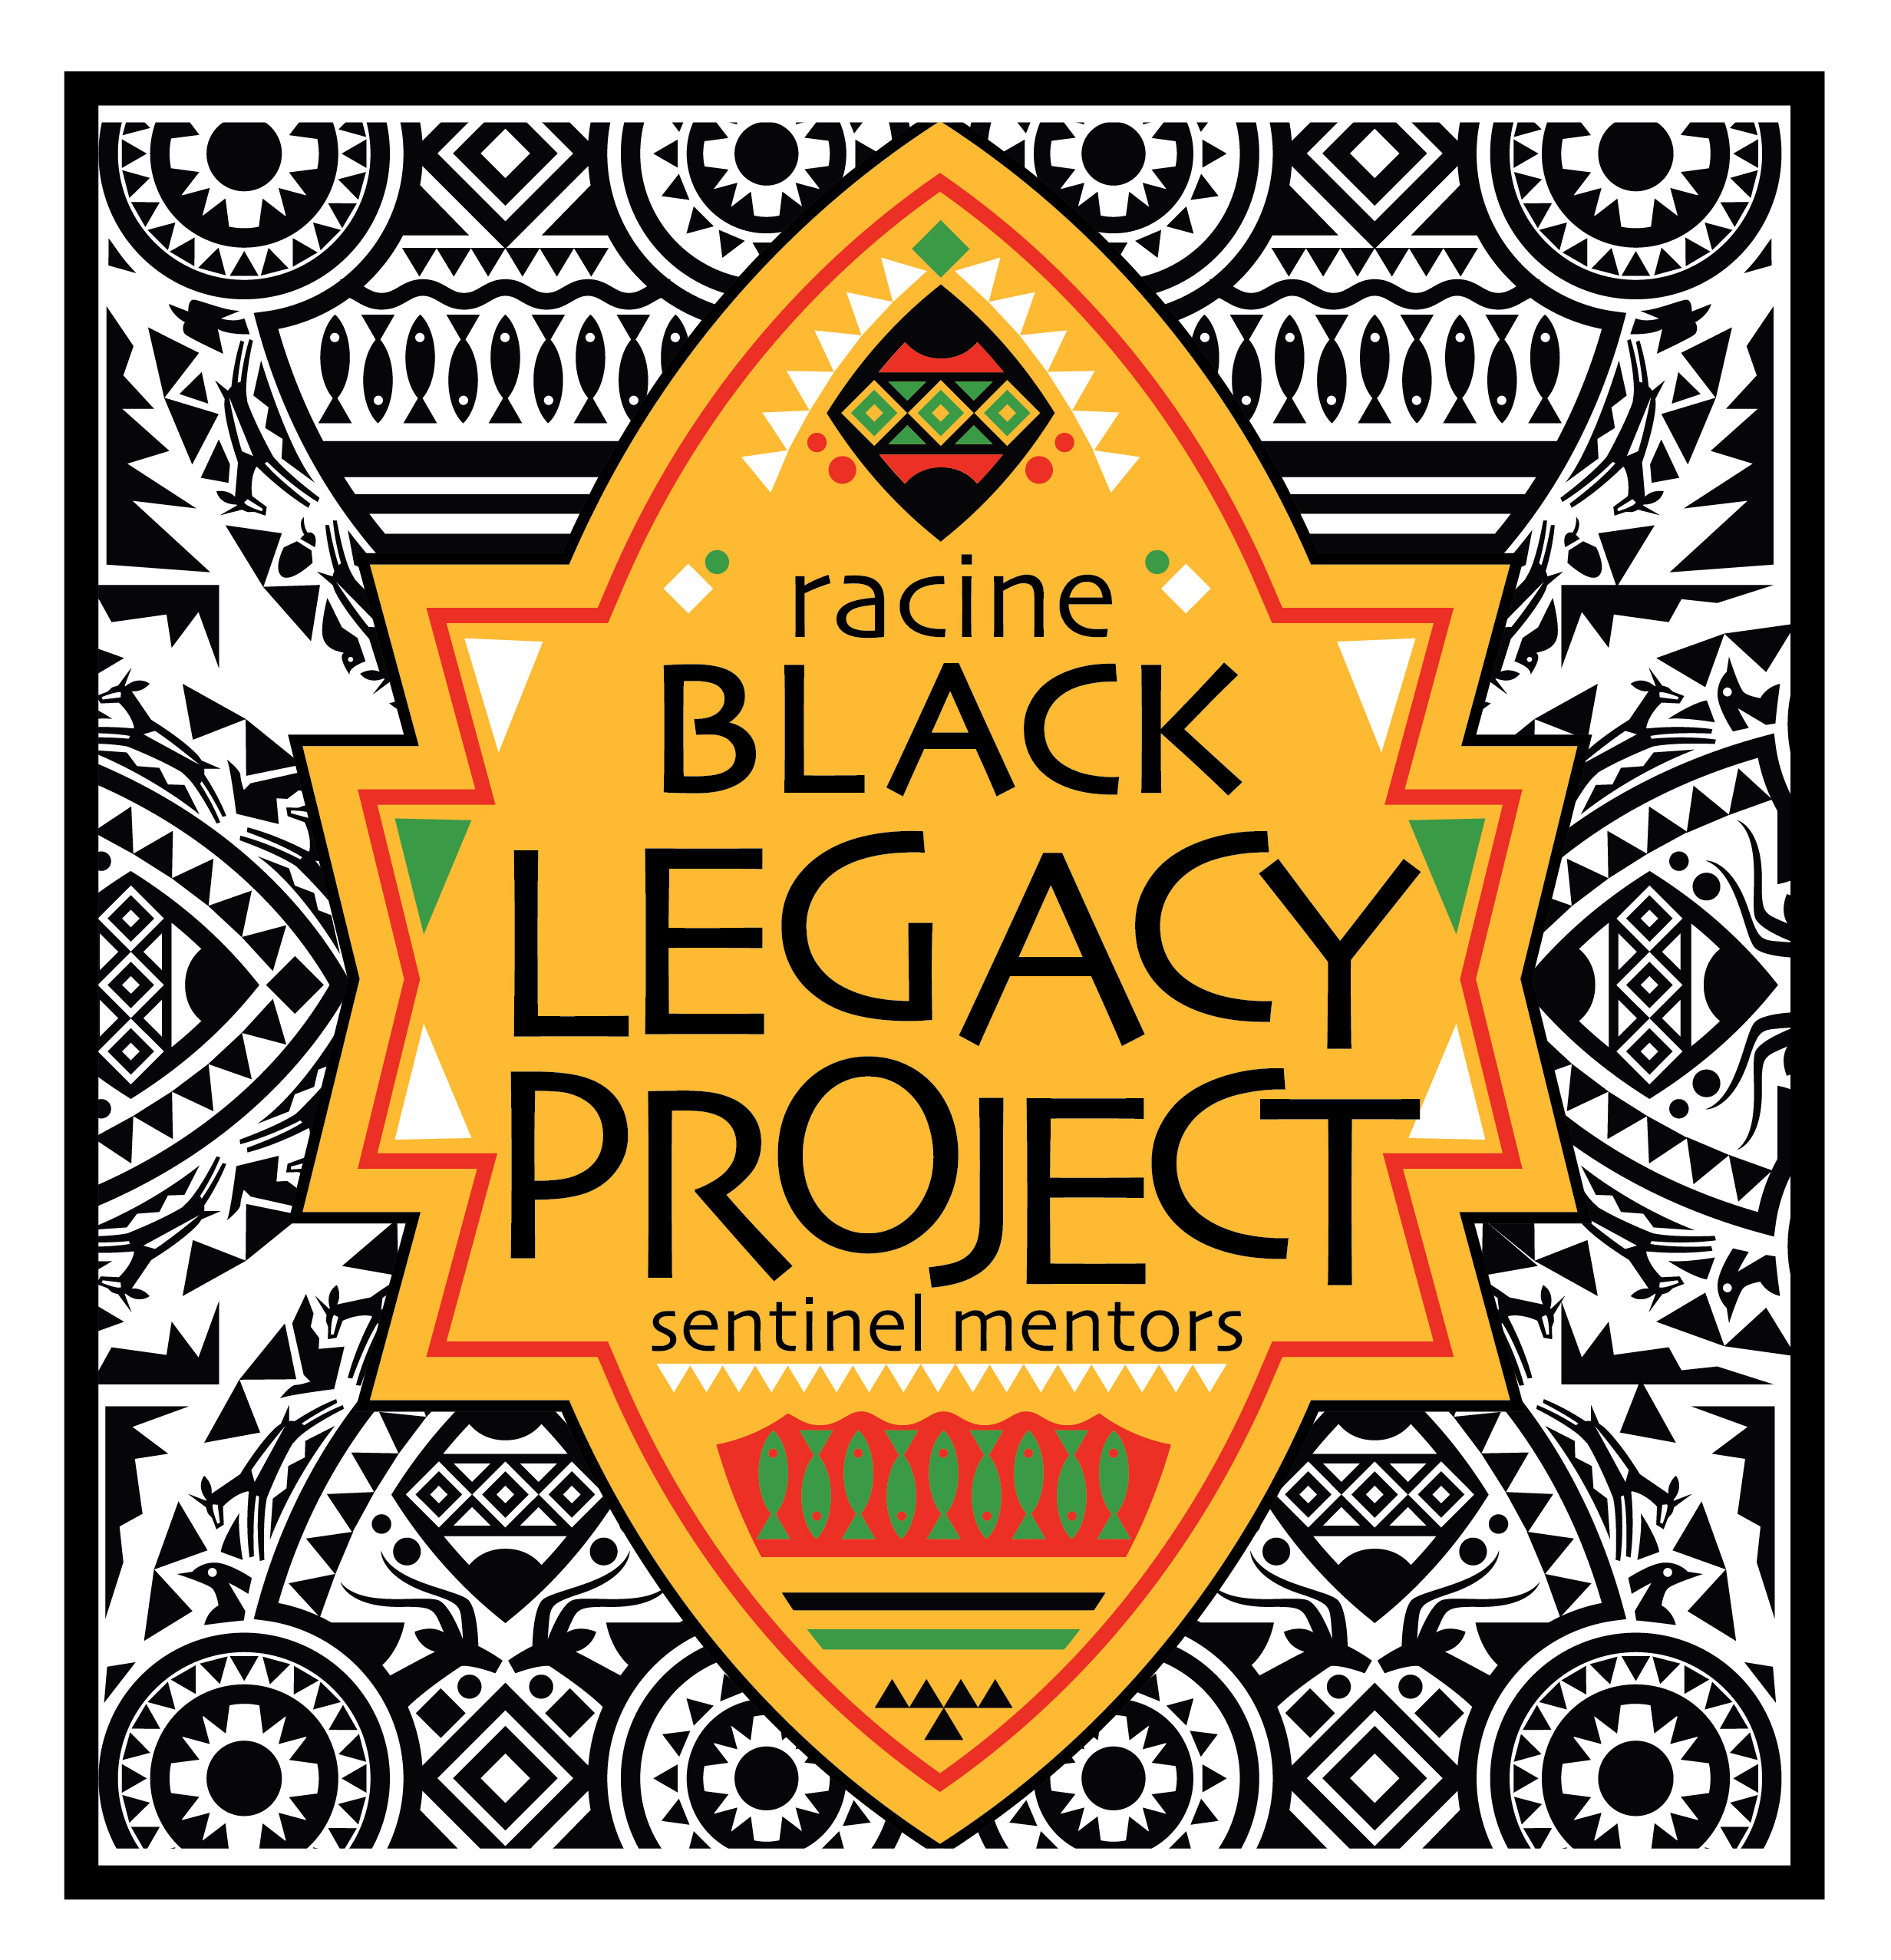 SM_BlackLegacyProject_2019_branding-01.jpg